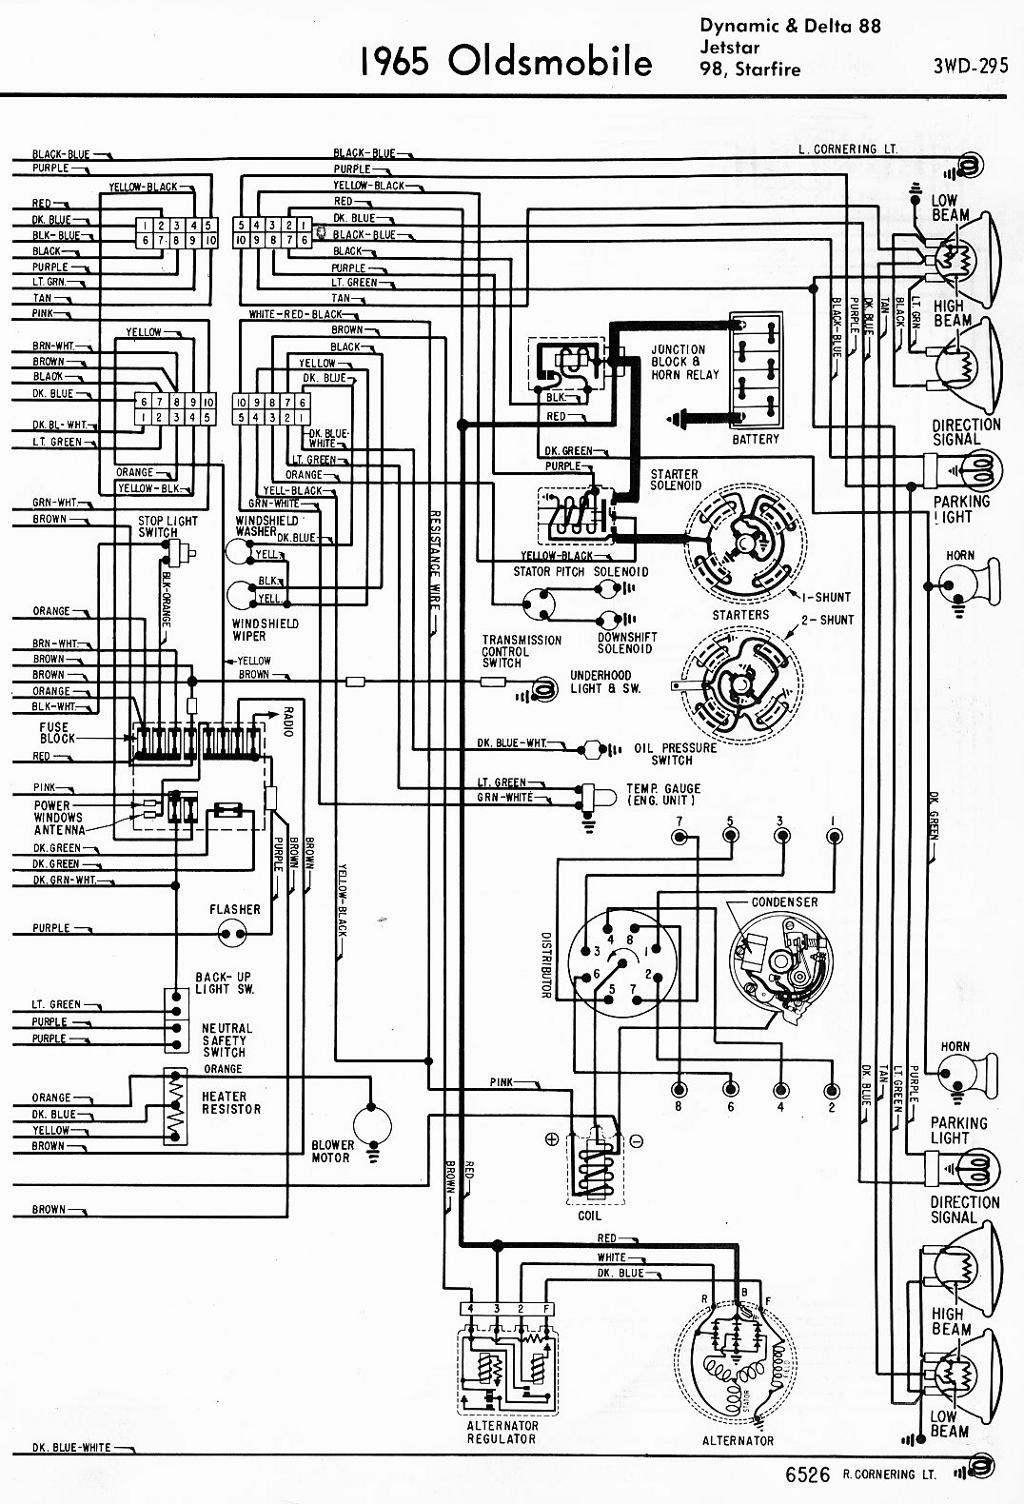 1971 Olds 350 Vacuum Diagram Trusted Wiring Diagrams Chevy Fuse Box 1970 Oldsmobile Cutlass U2022 2004 Blazer Diaphragm